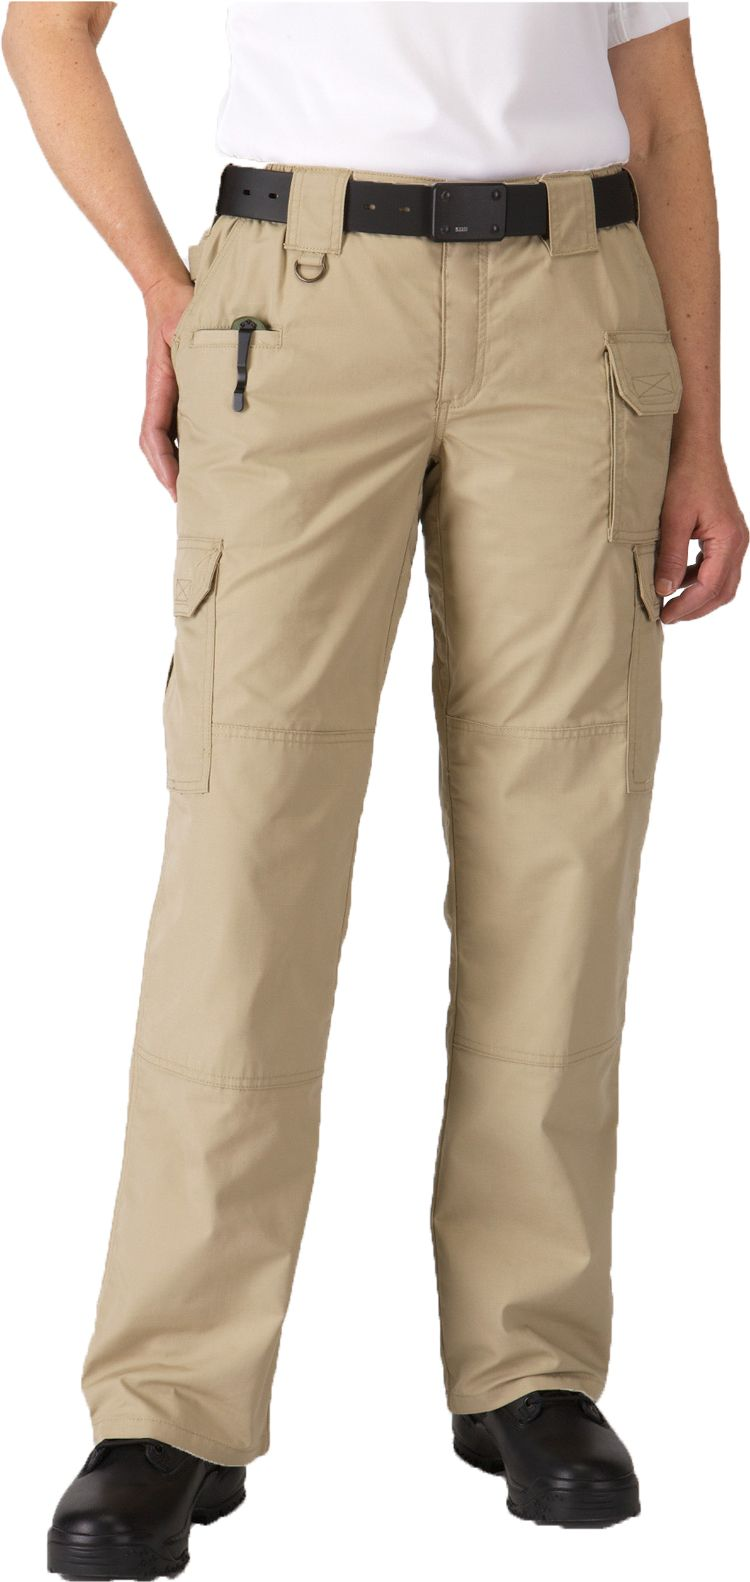 5.11 Tactical Women's Taclite Pro Pants, Size: 8, TDU Khaki thumbnail